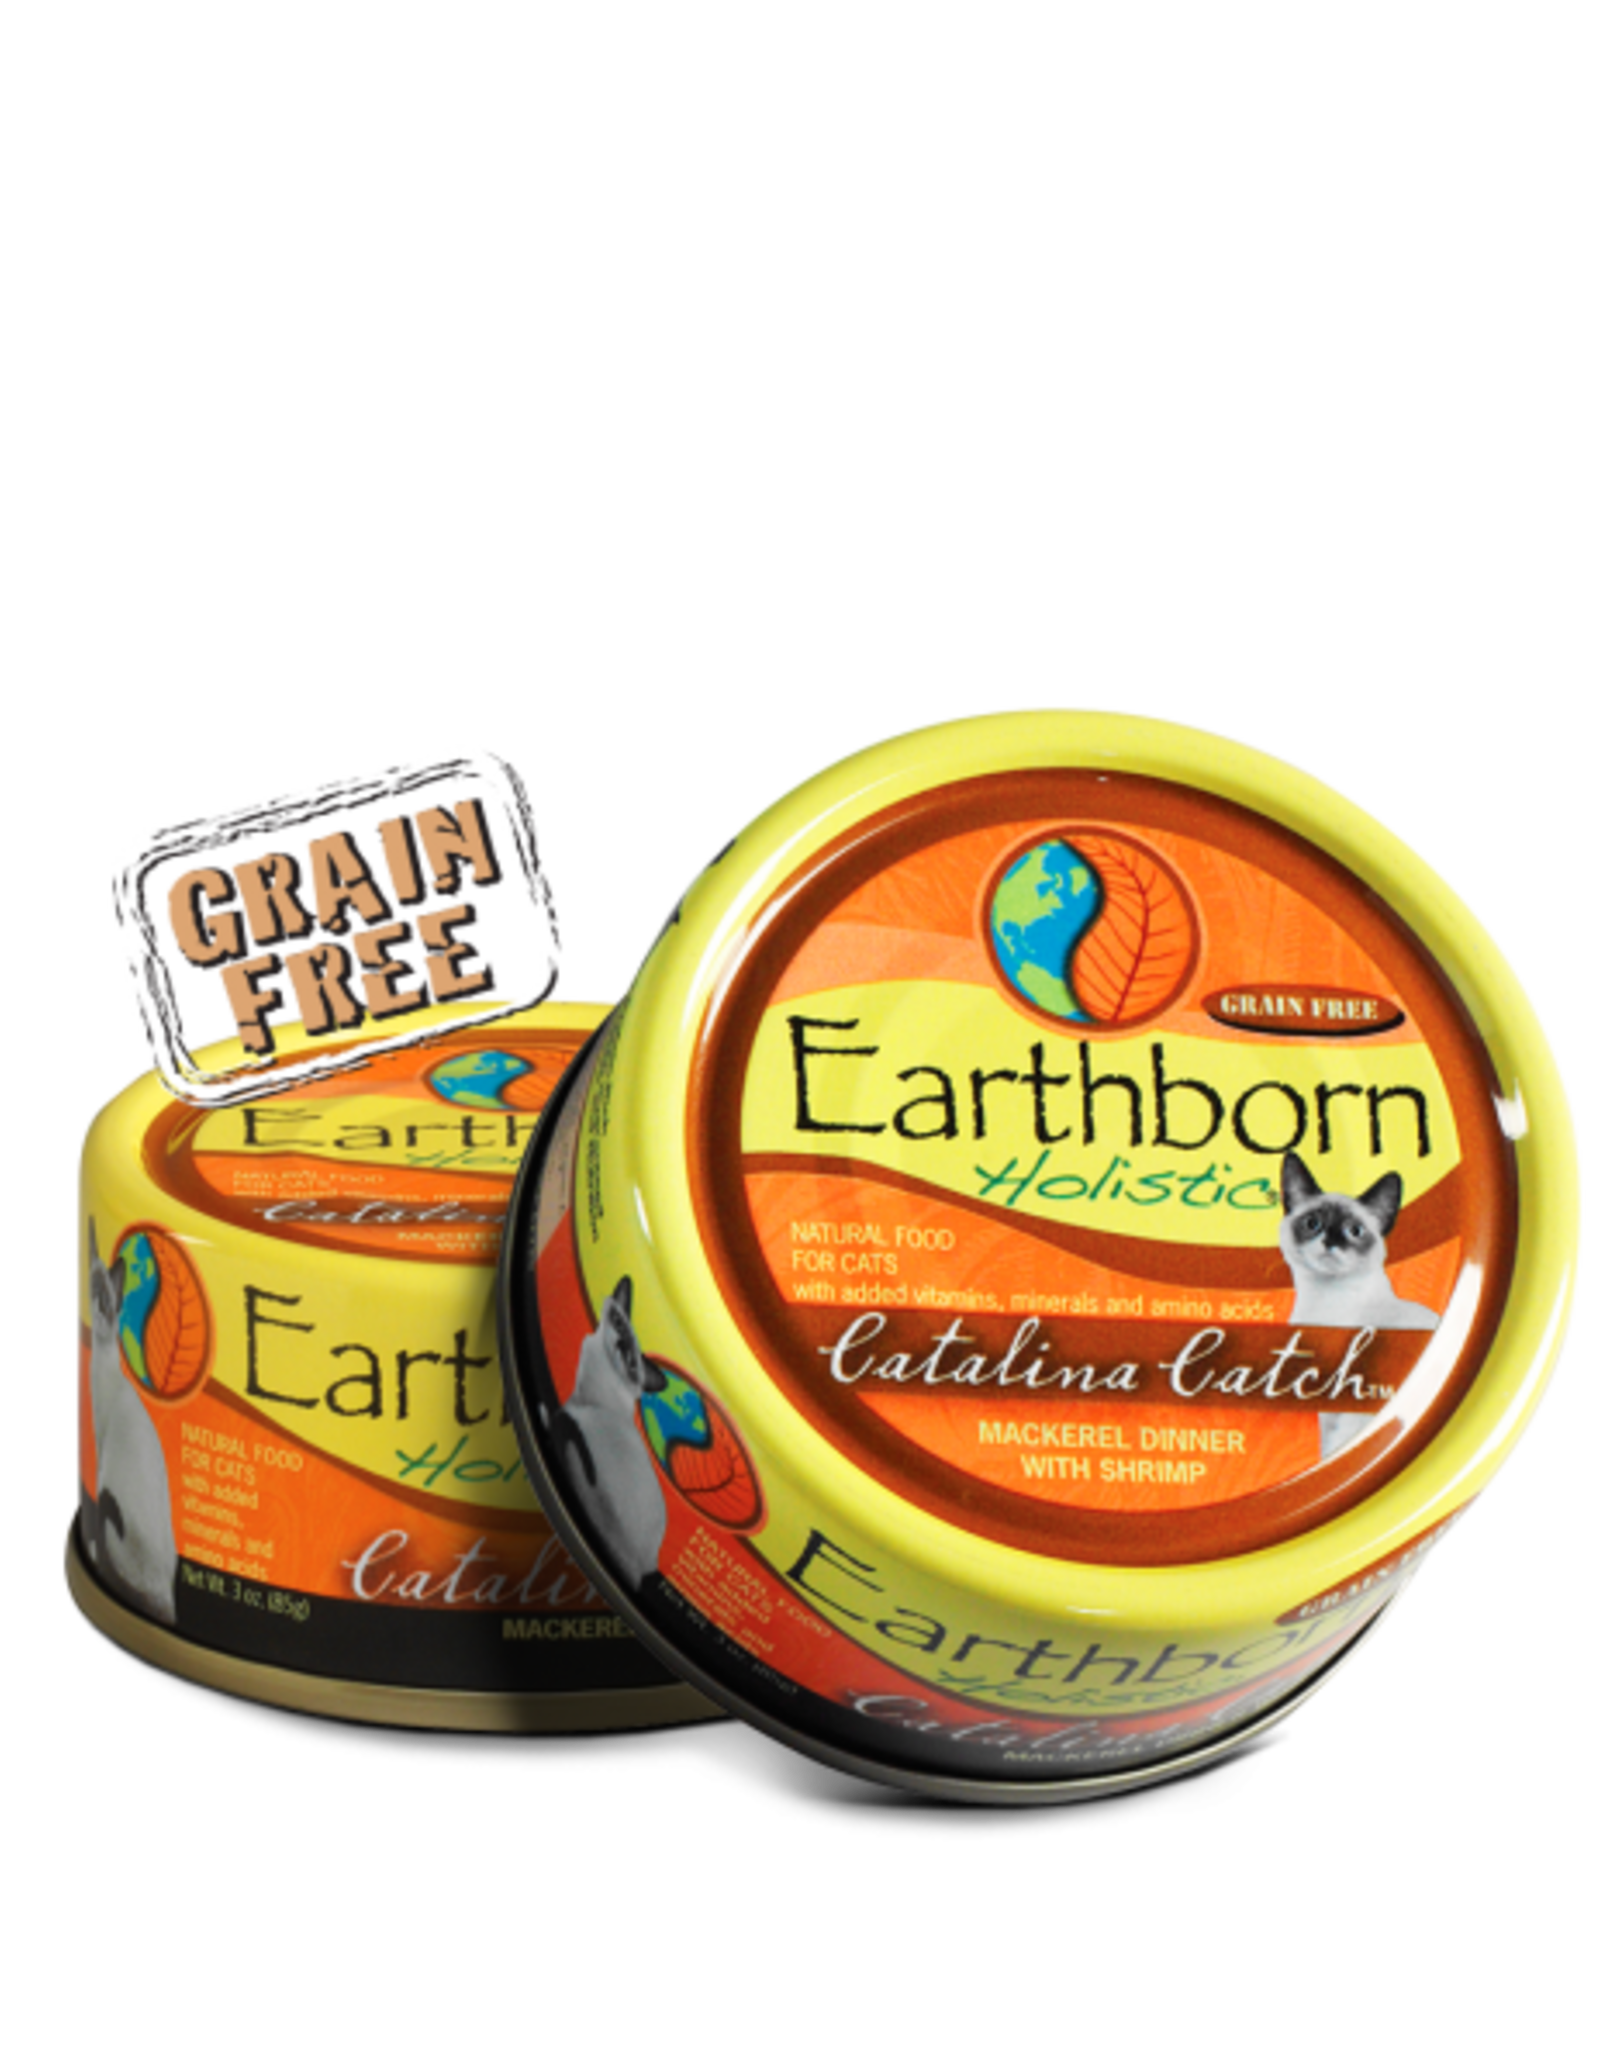 EARTHBORN EARTHBORN CAT GRAIN FREE CATALINA CATCH 5.5OZ